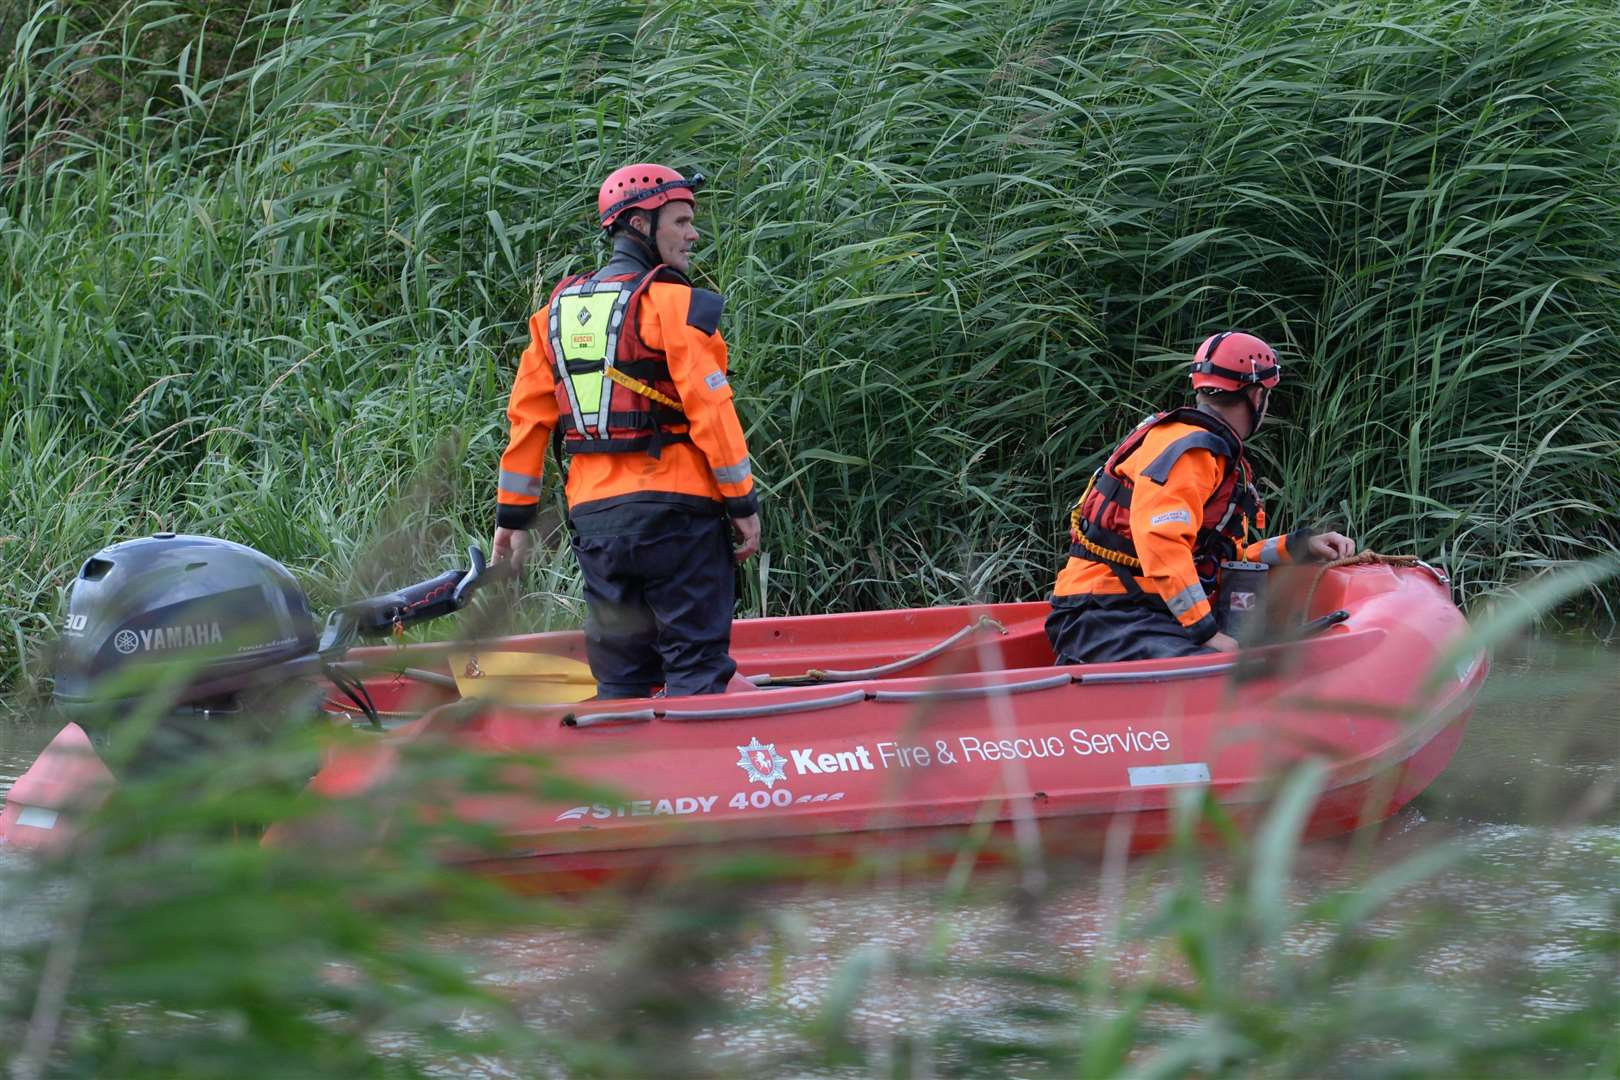 A Kent Fire and Rescue RIB as the search continued on the river